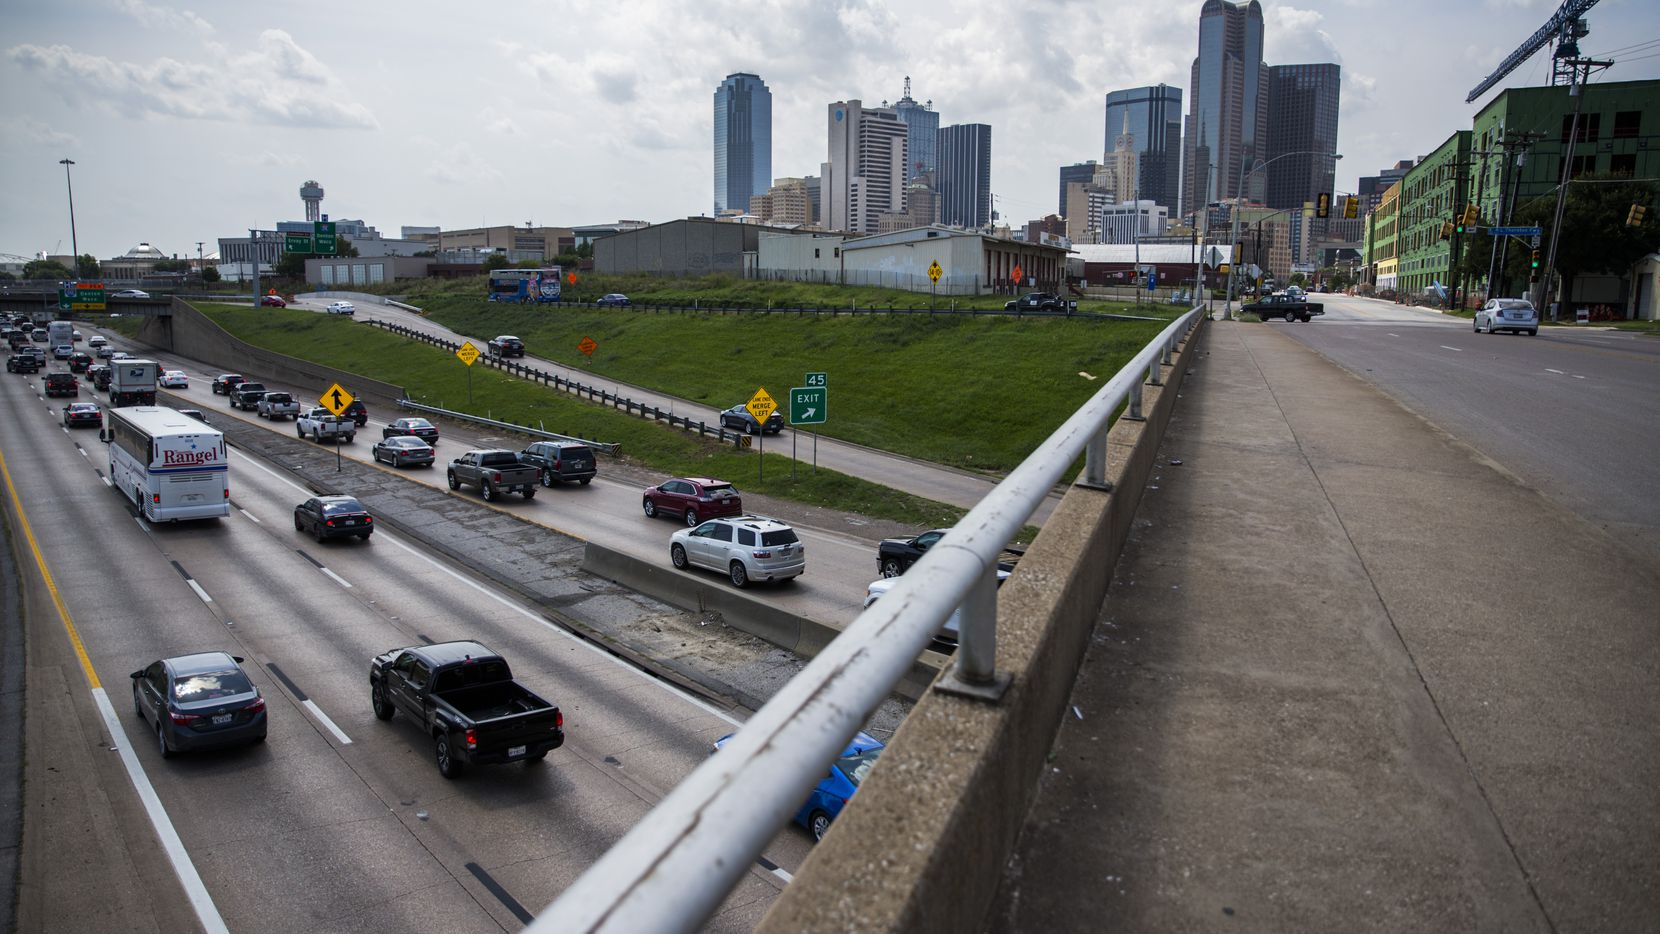 Vehicles make their way west on Interstate 30 under the S Harwood Street bridge, south of downtown on Saturday, June 18, 2016 in Dallas.